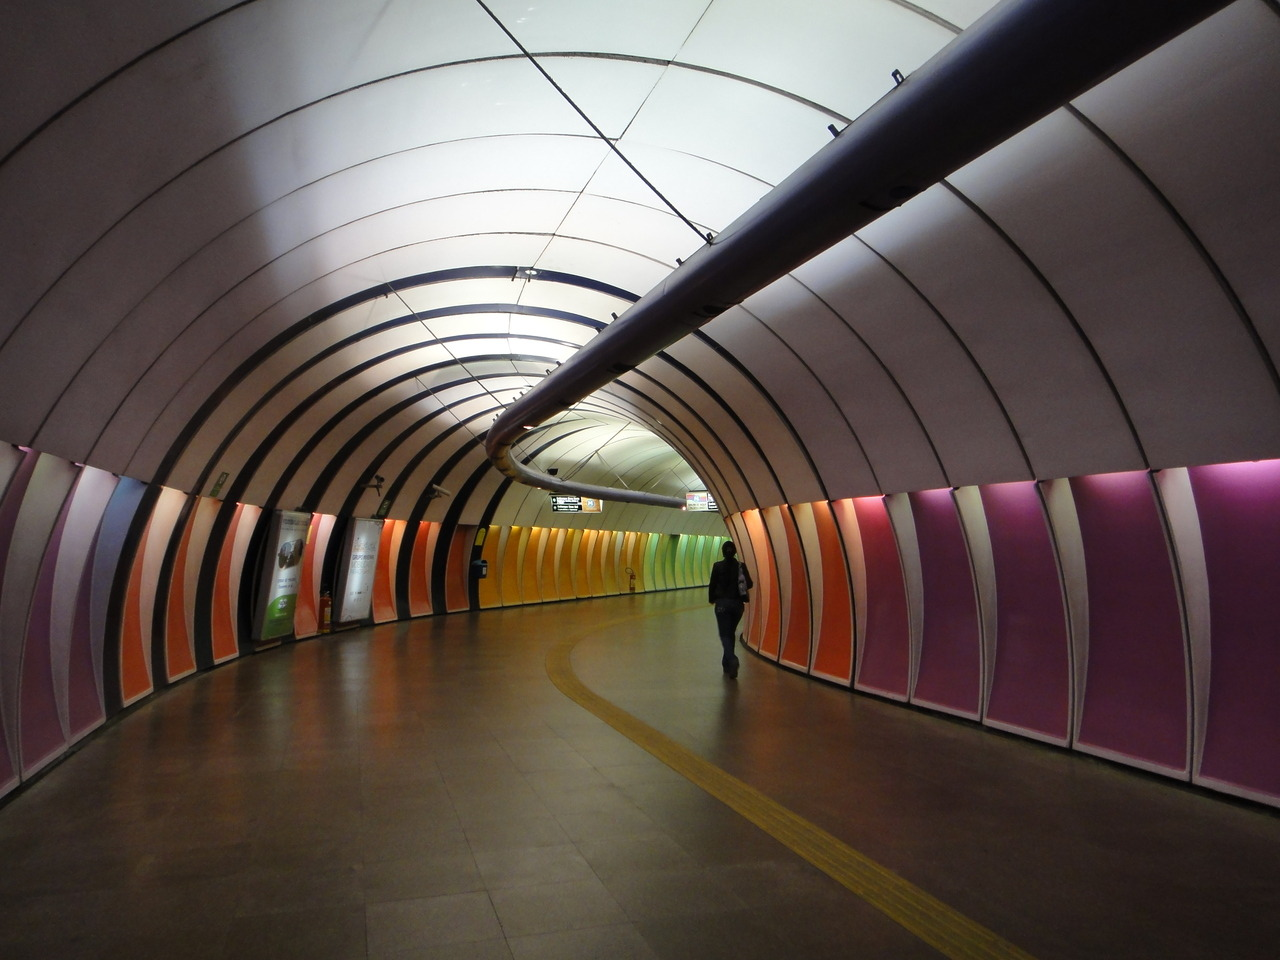 certainly the funkiest metro station i've ever seen. cardeal arcoverde, copacabana. (photo by J)